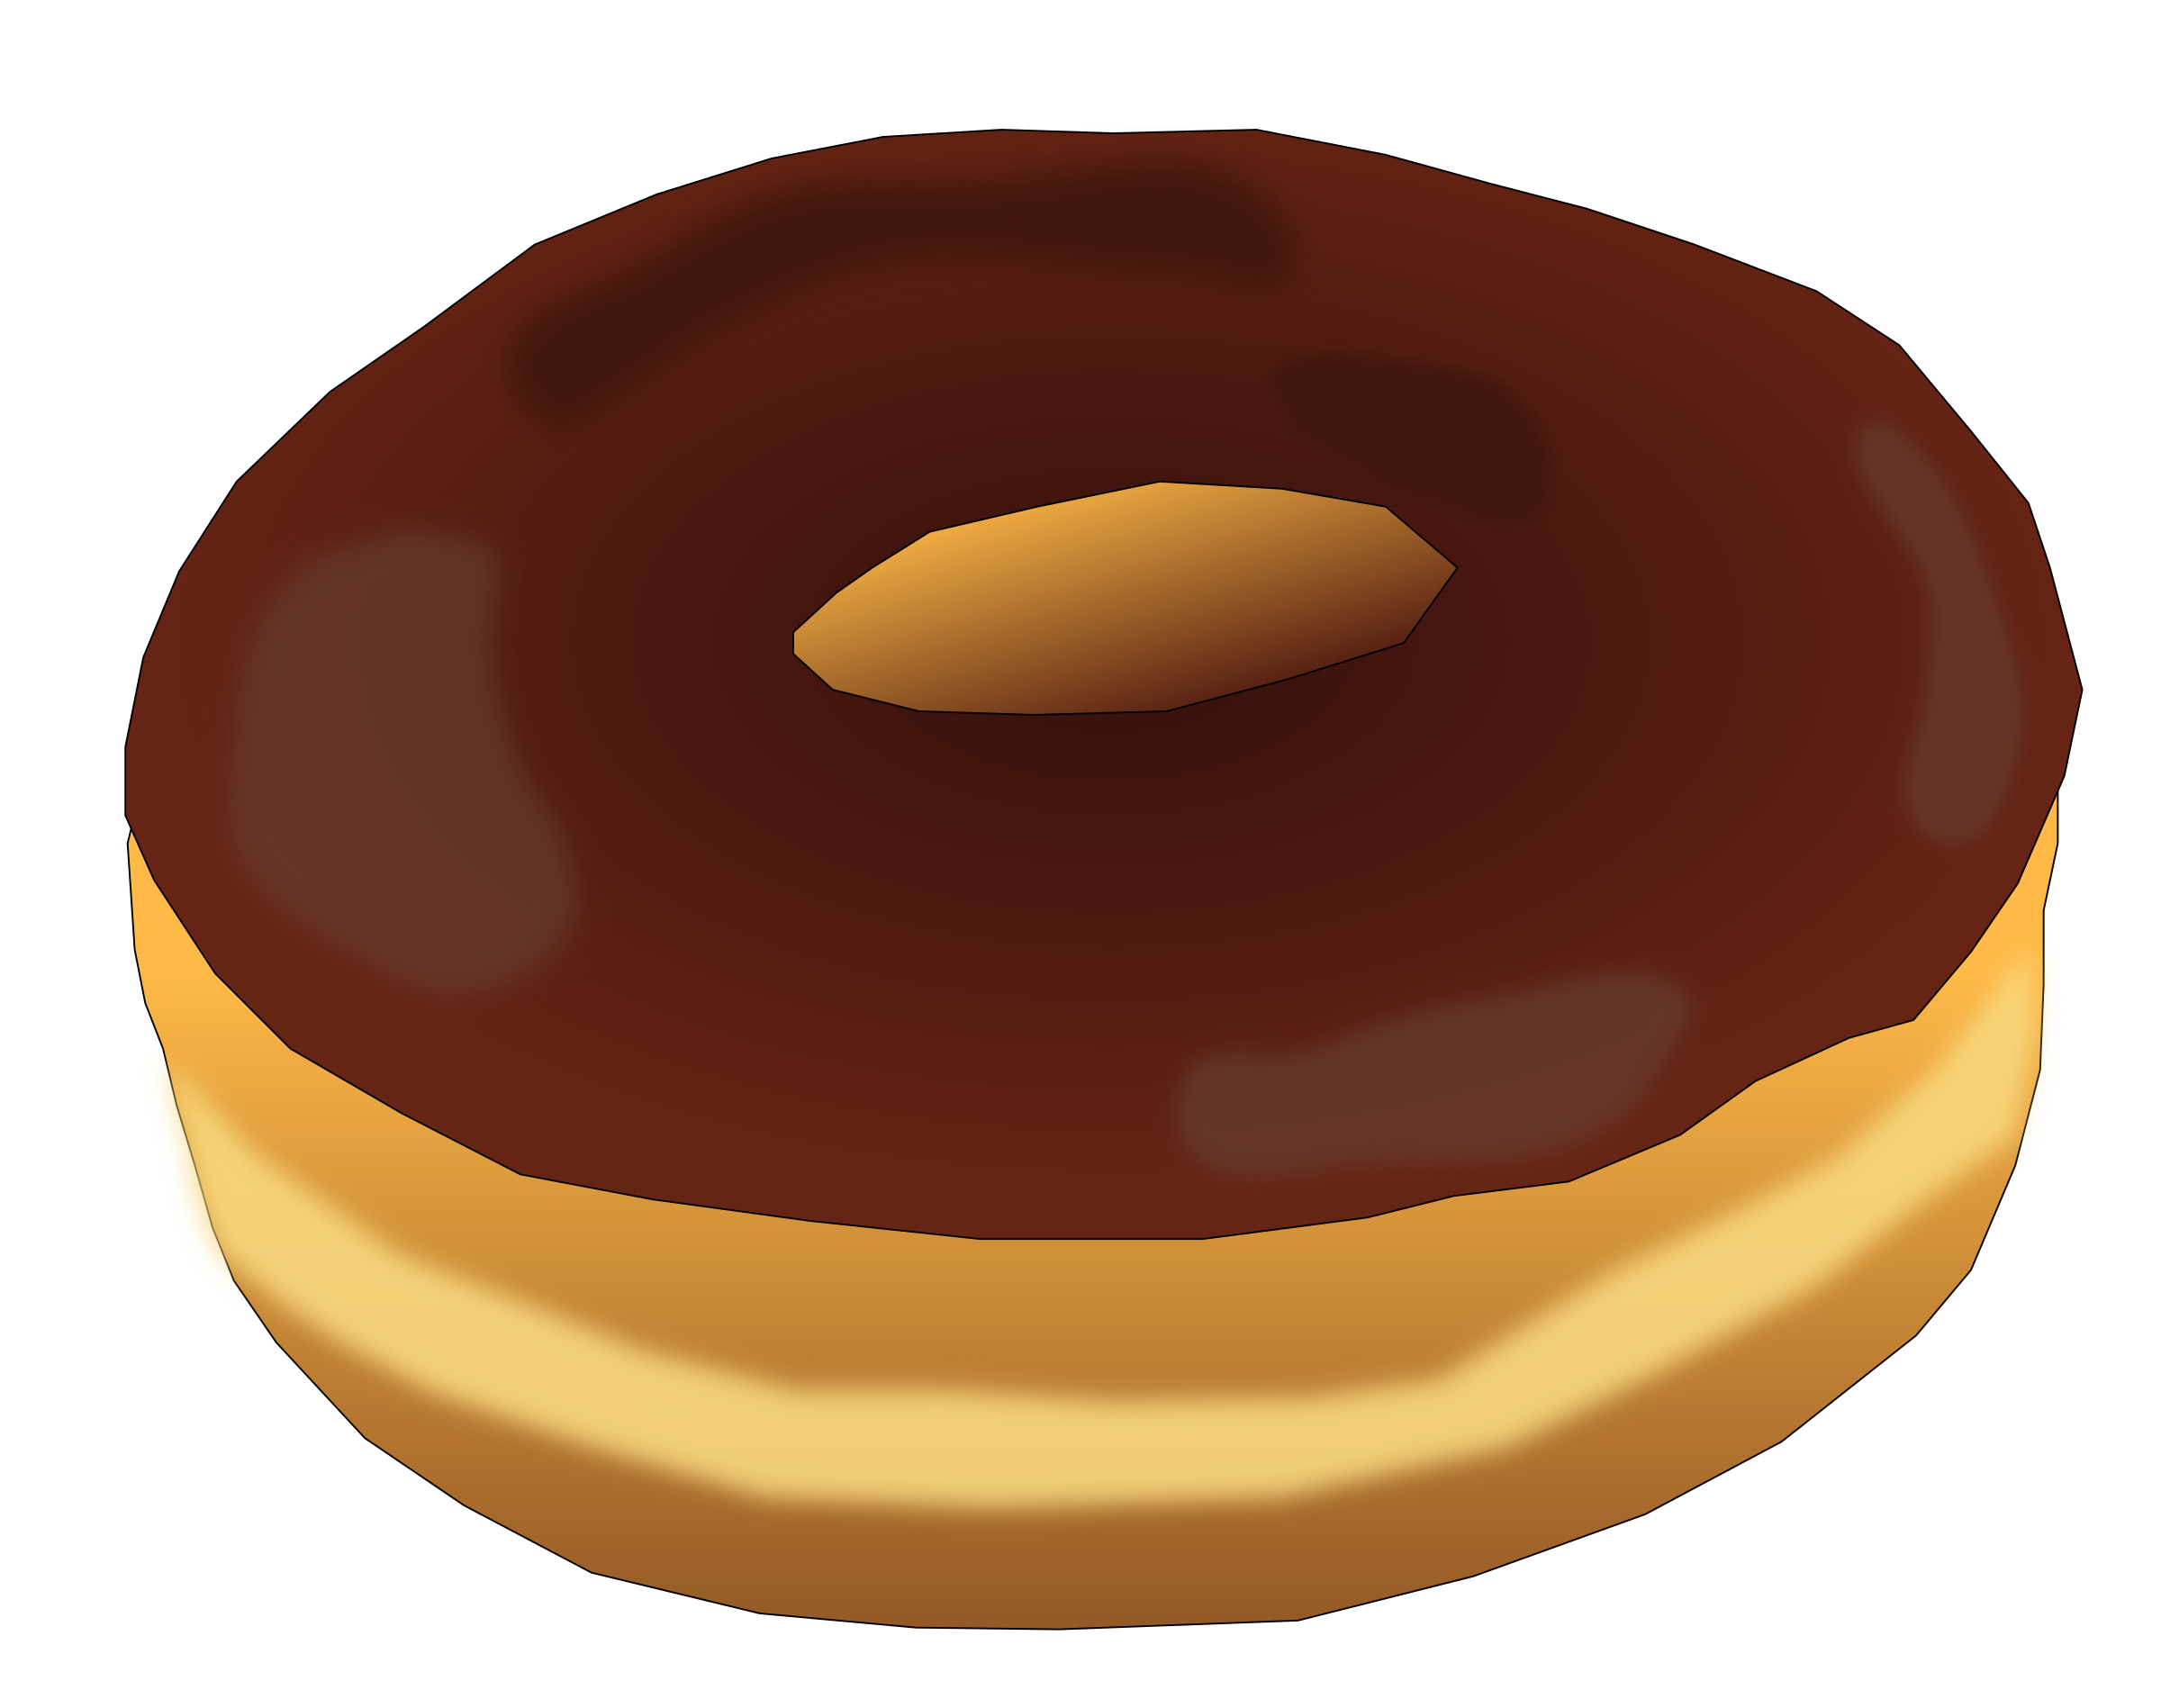 Plain Donut 2 by PinkJellyfish